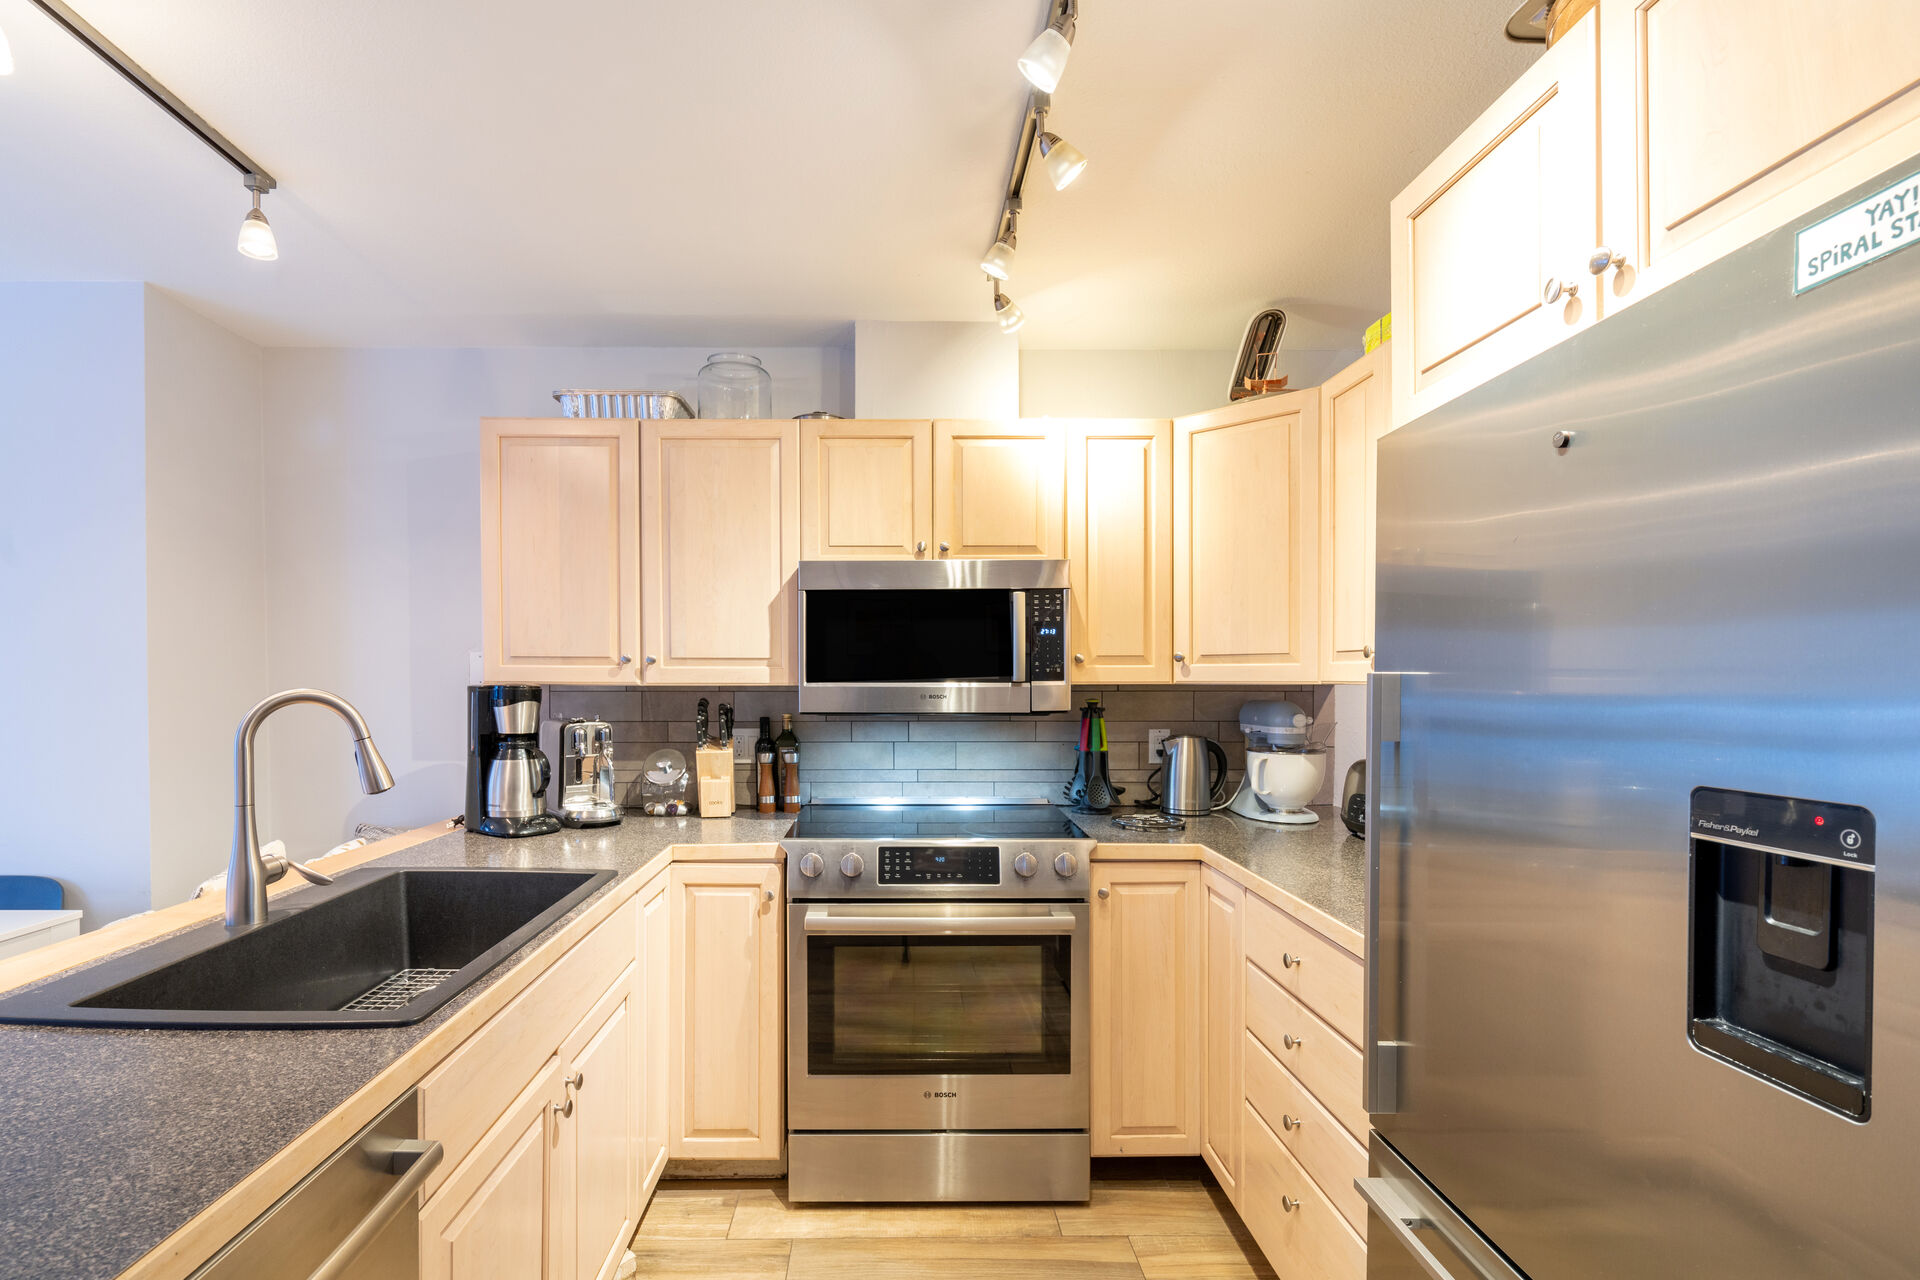 Kitchen with a refrigerator, an oven, microwave and sink